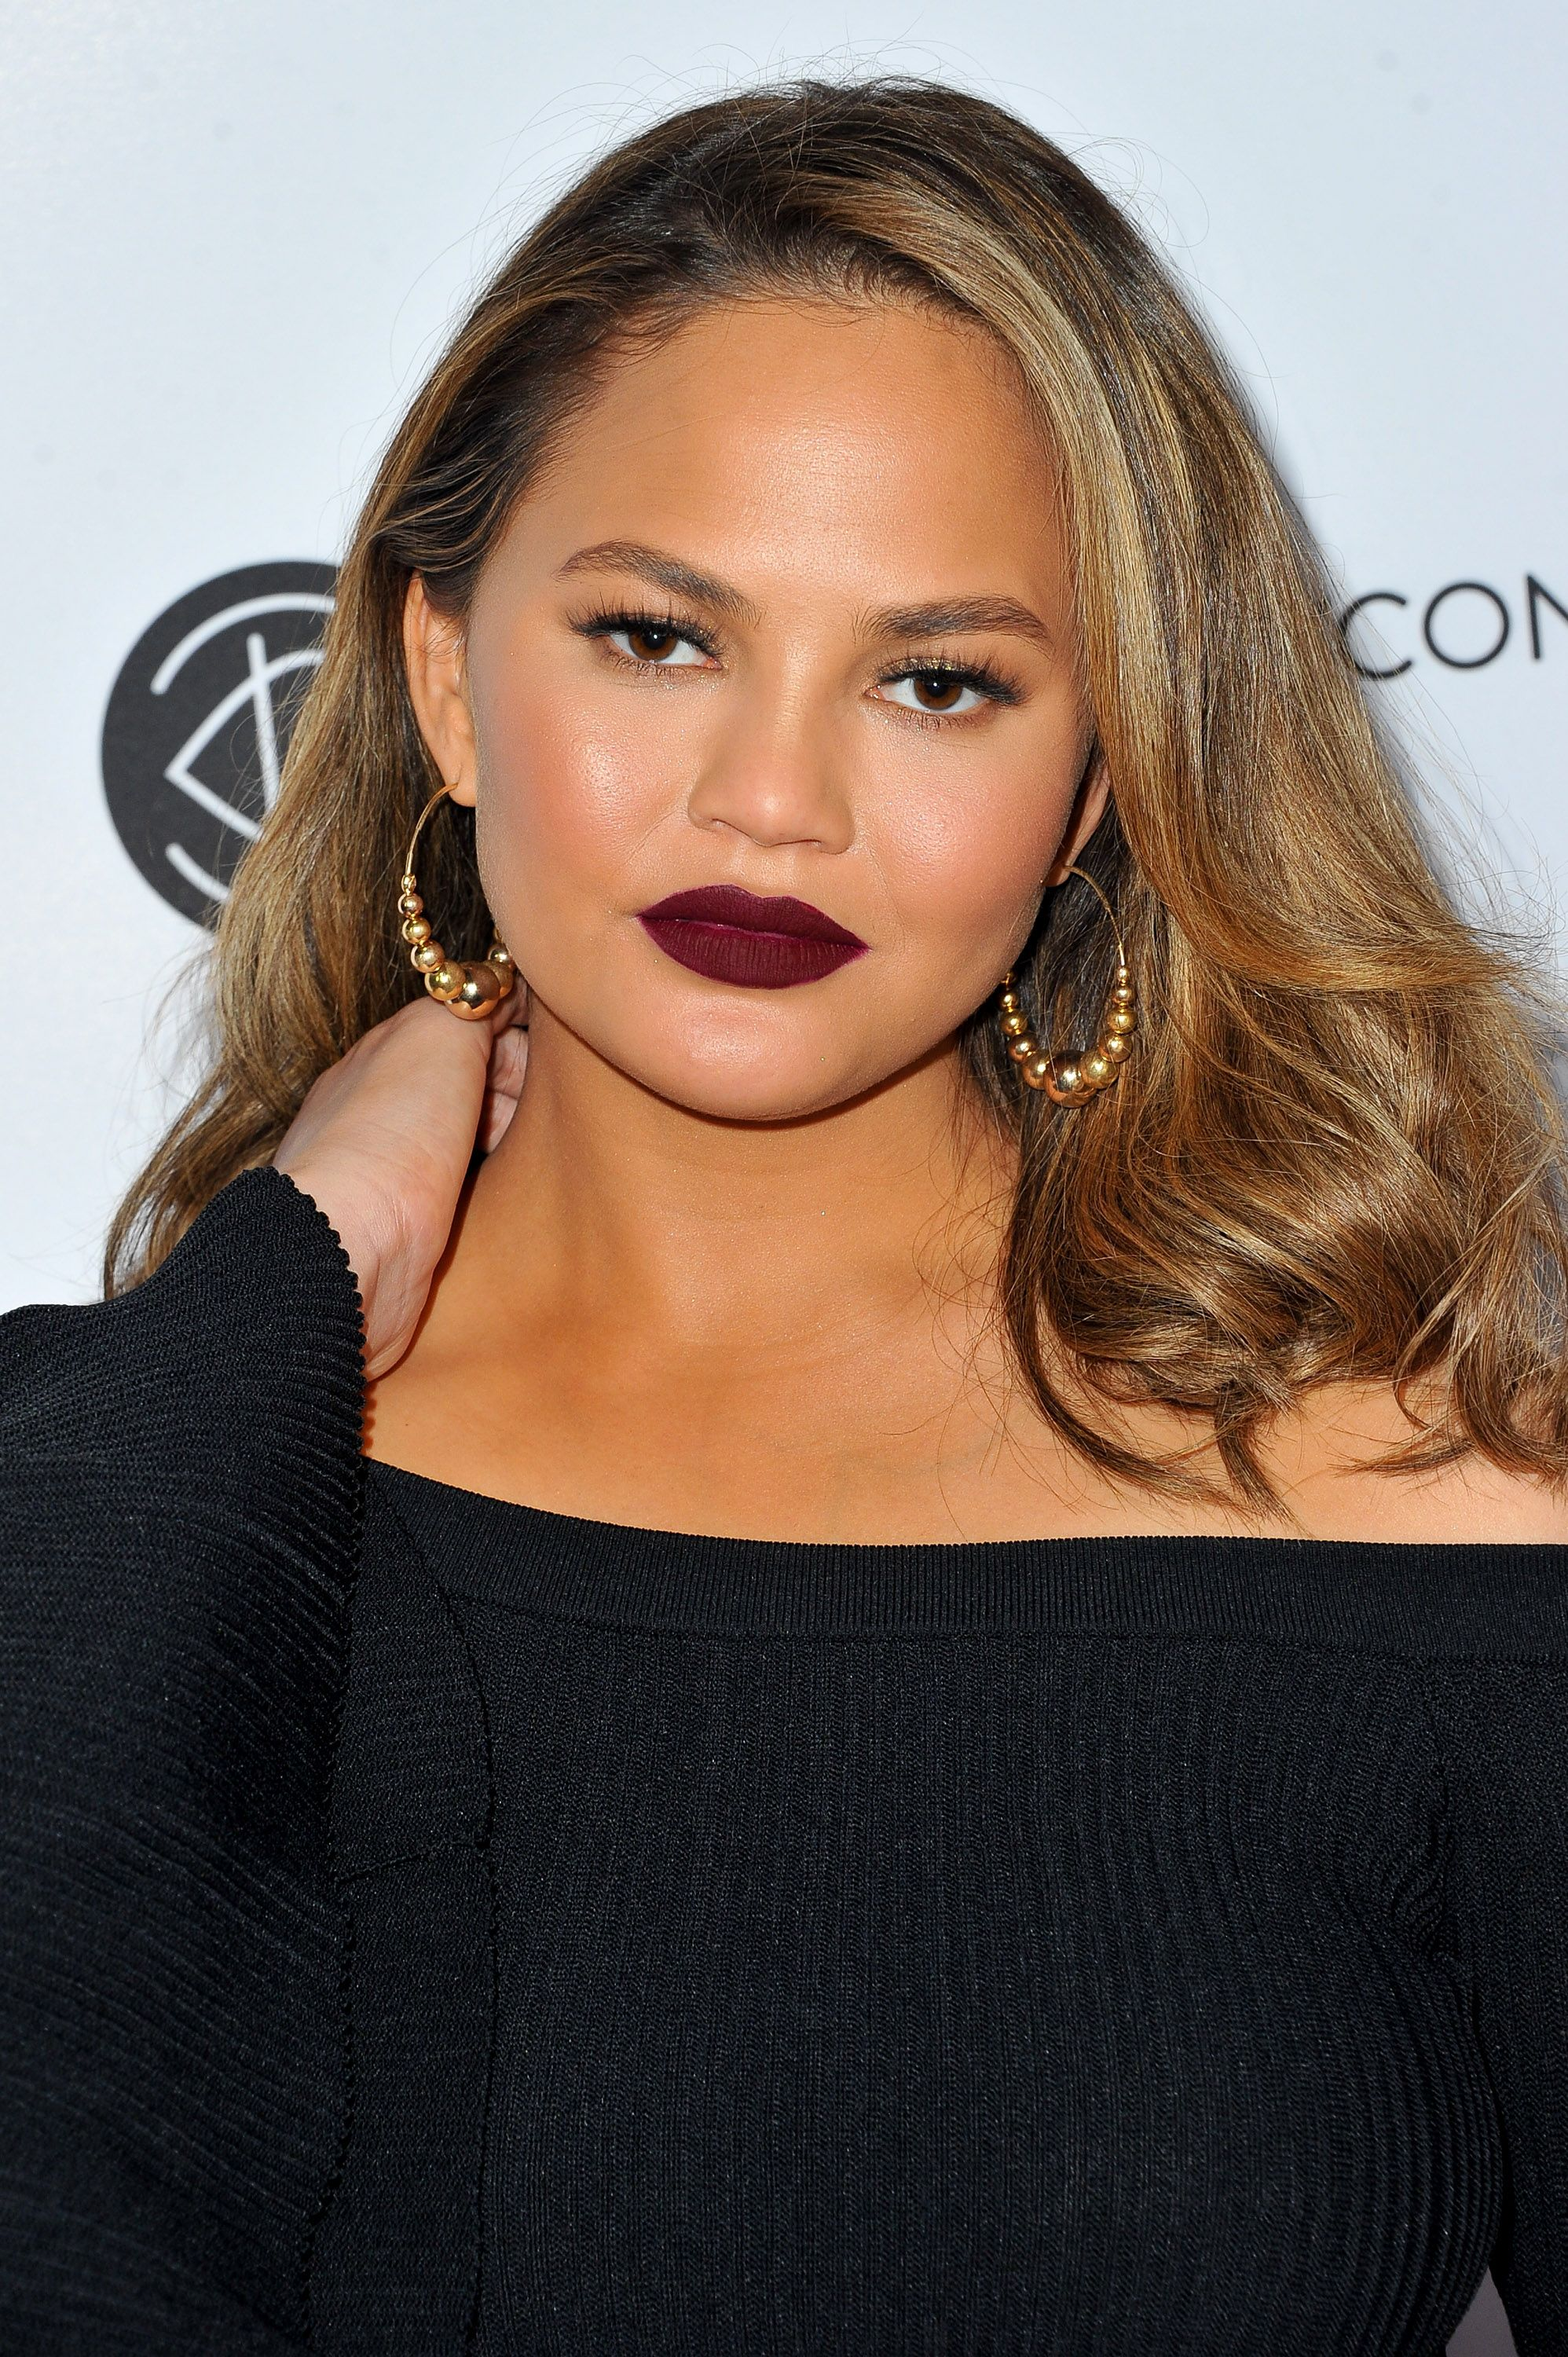 Model Chrissy Teigen at the 5th Annual Beautycon Festival Los Angeles in Los Angeles, California | Photo: Allen Berezovsky/Getty Images for Fashion Media